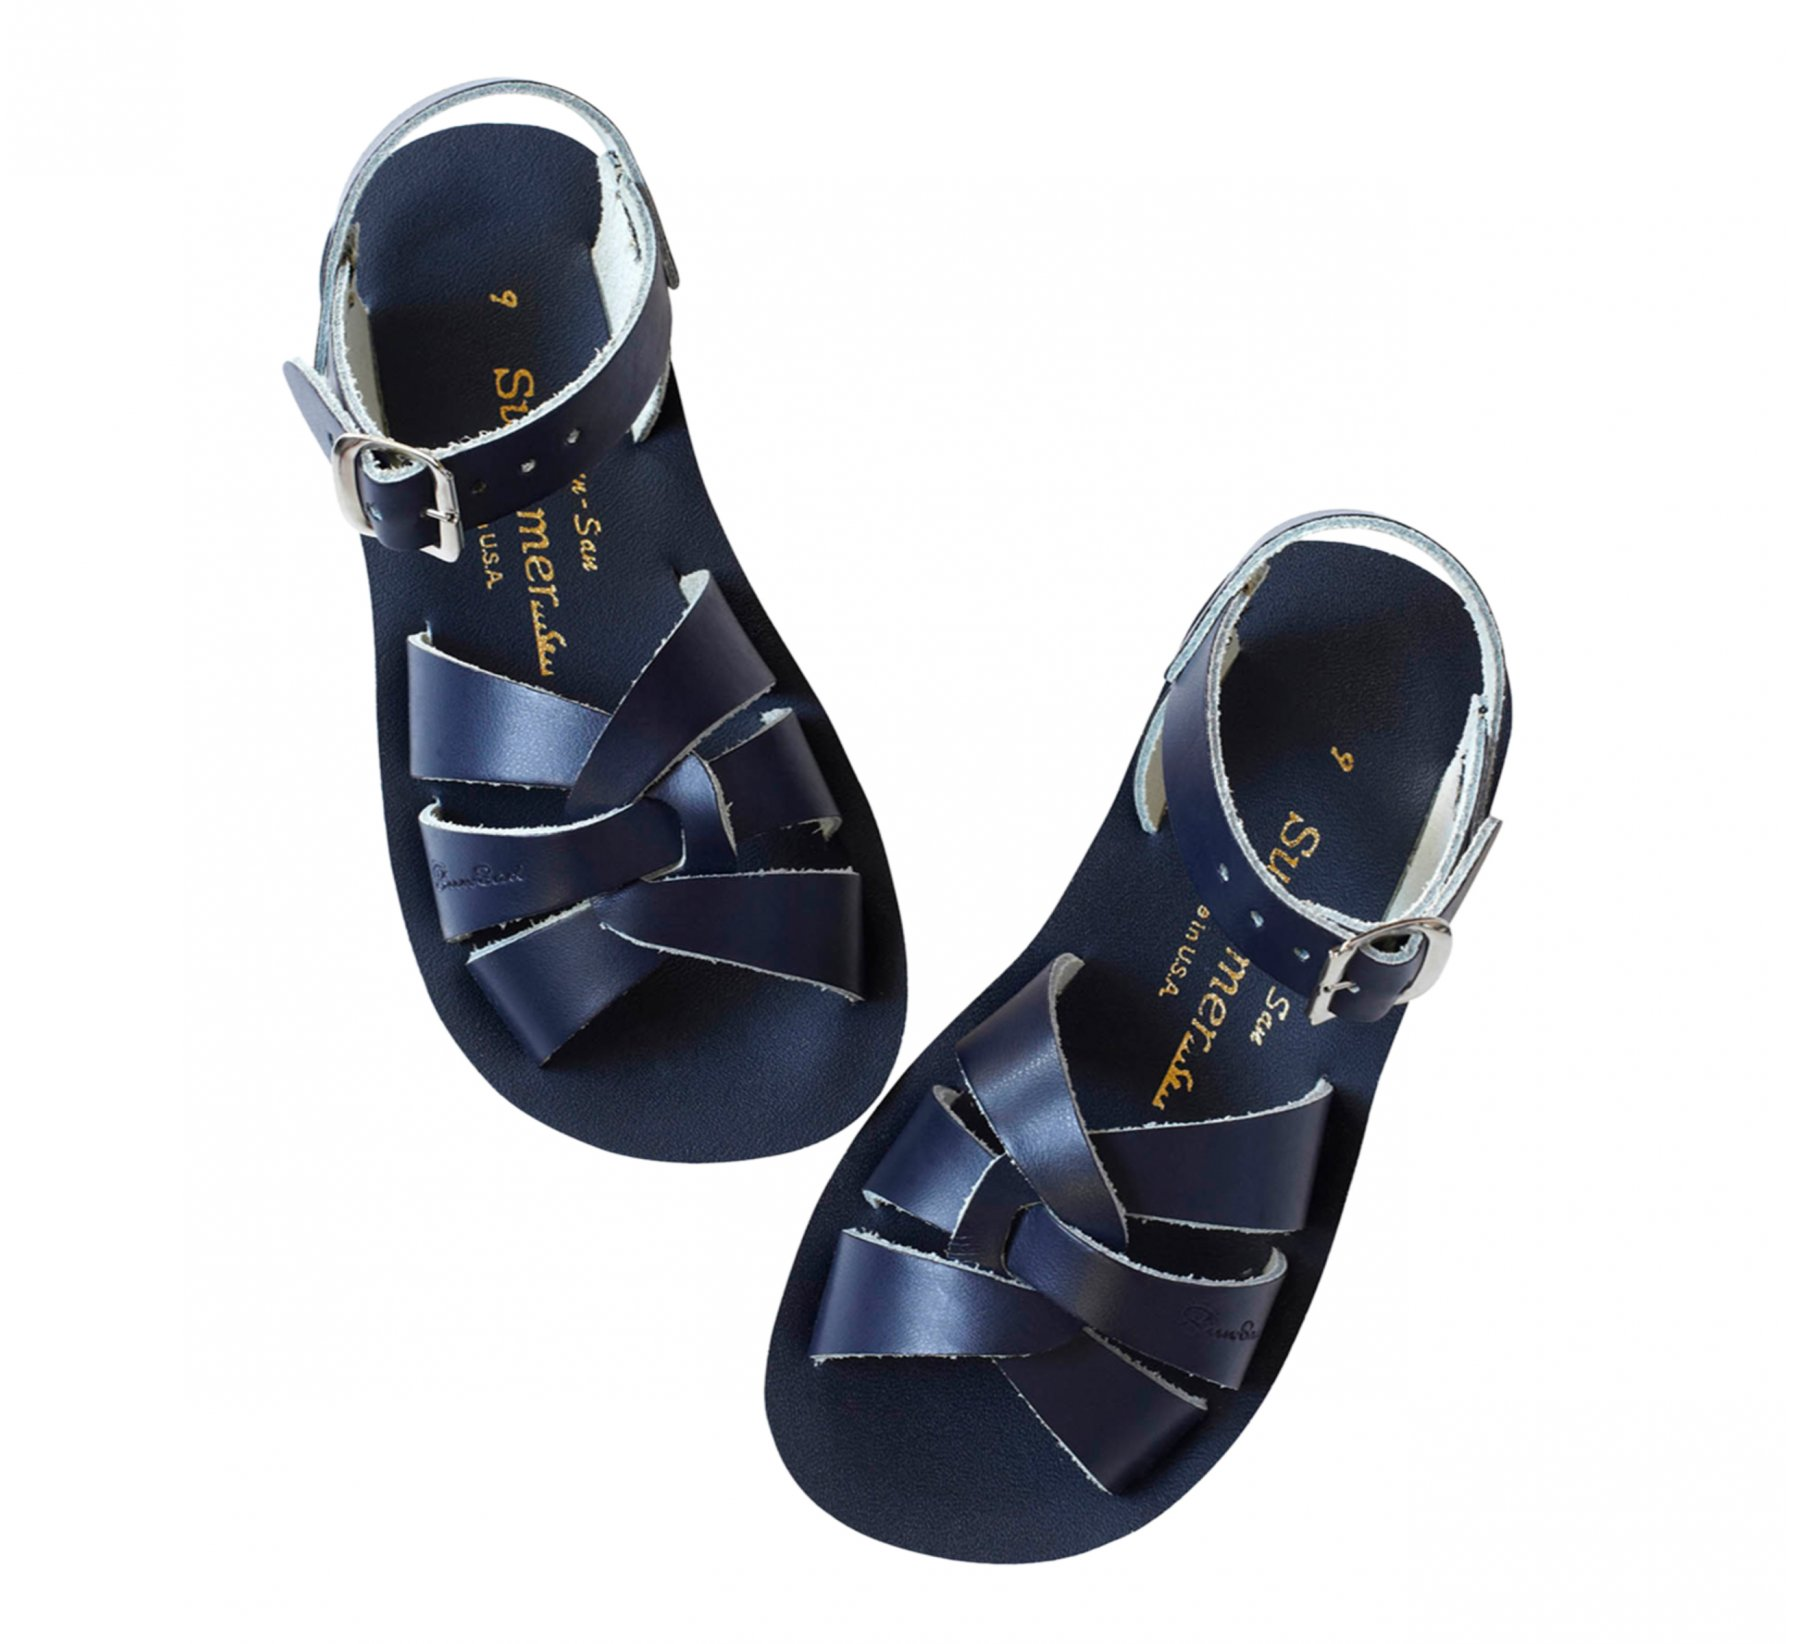 Swimmer in Marineblau - Salt Water Sandals